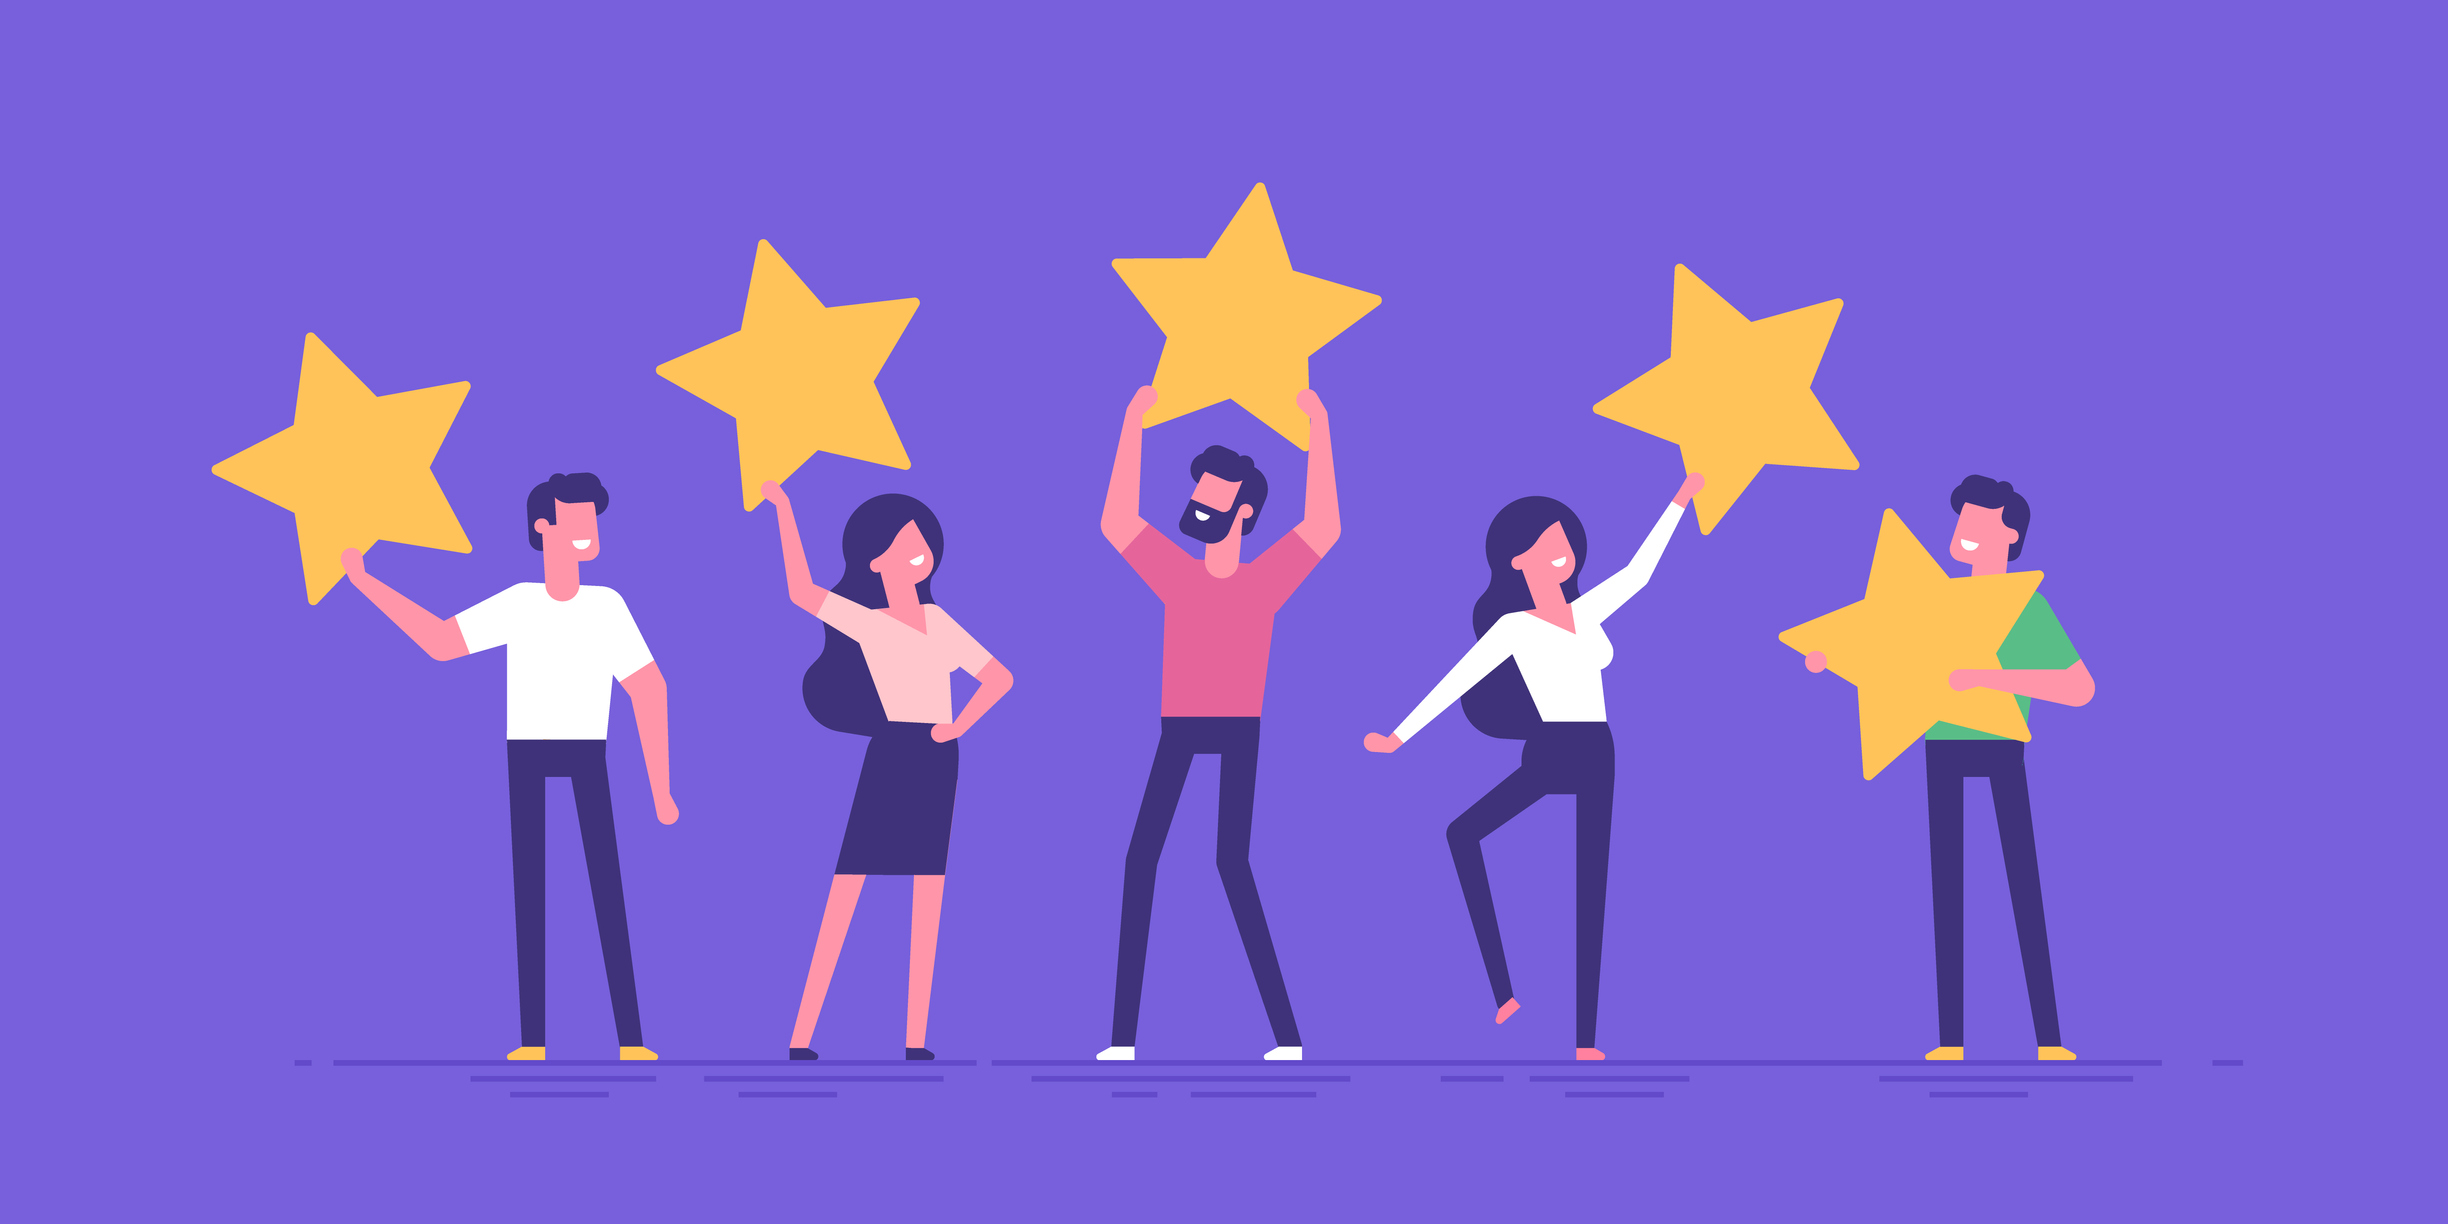 Five illustrated people holding up five stars